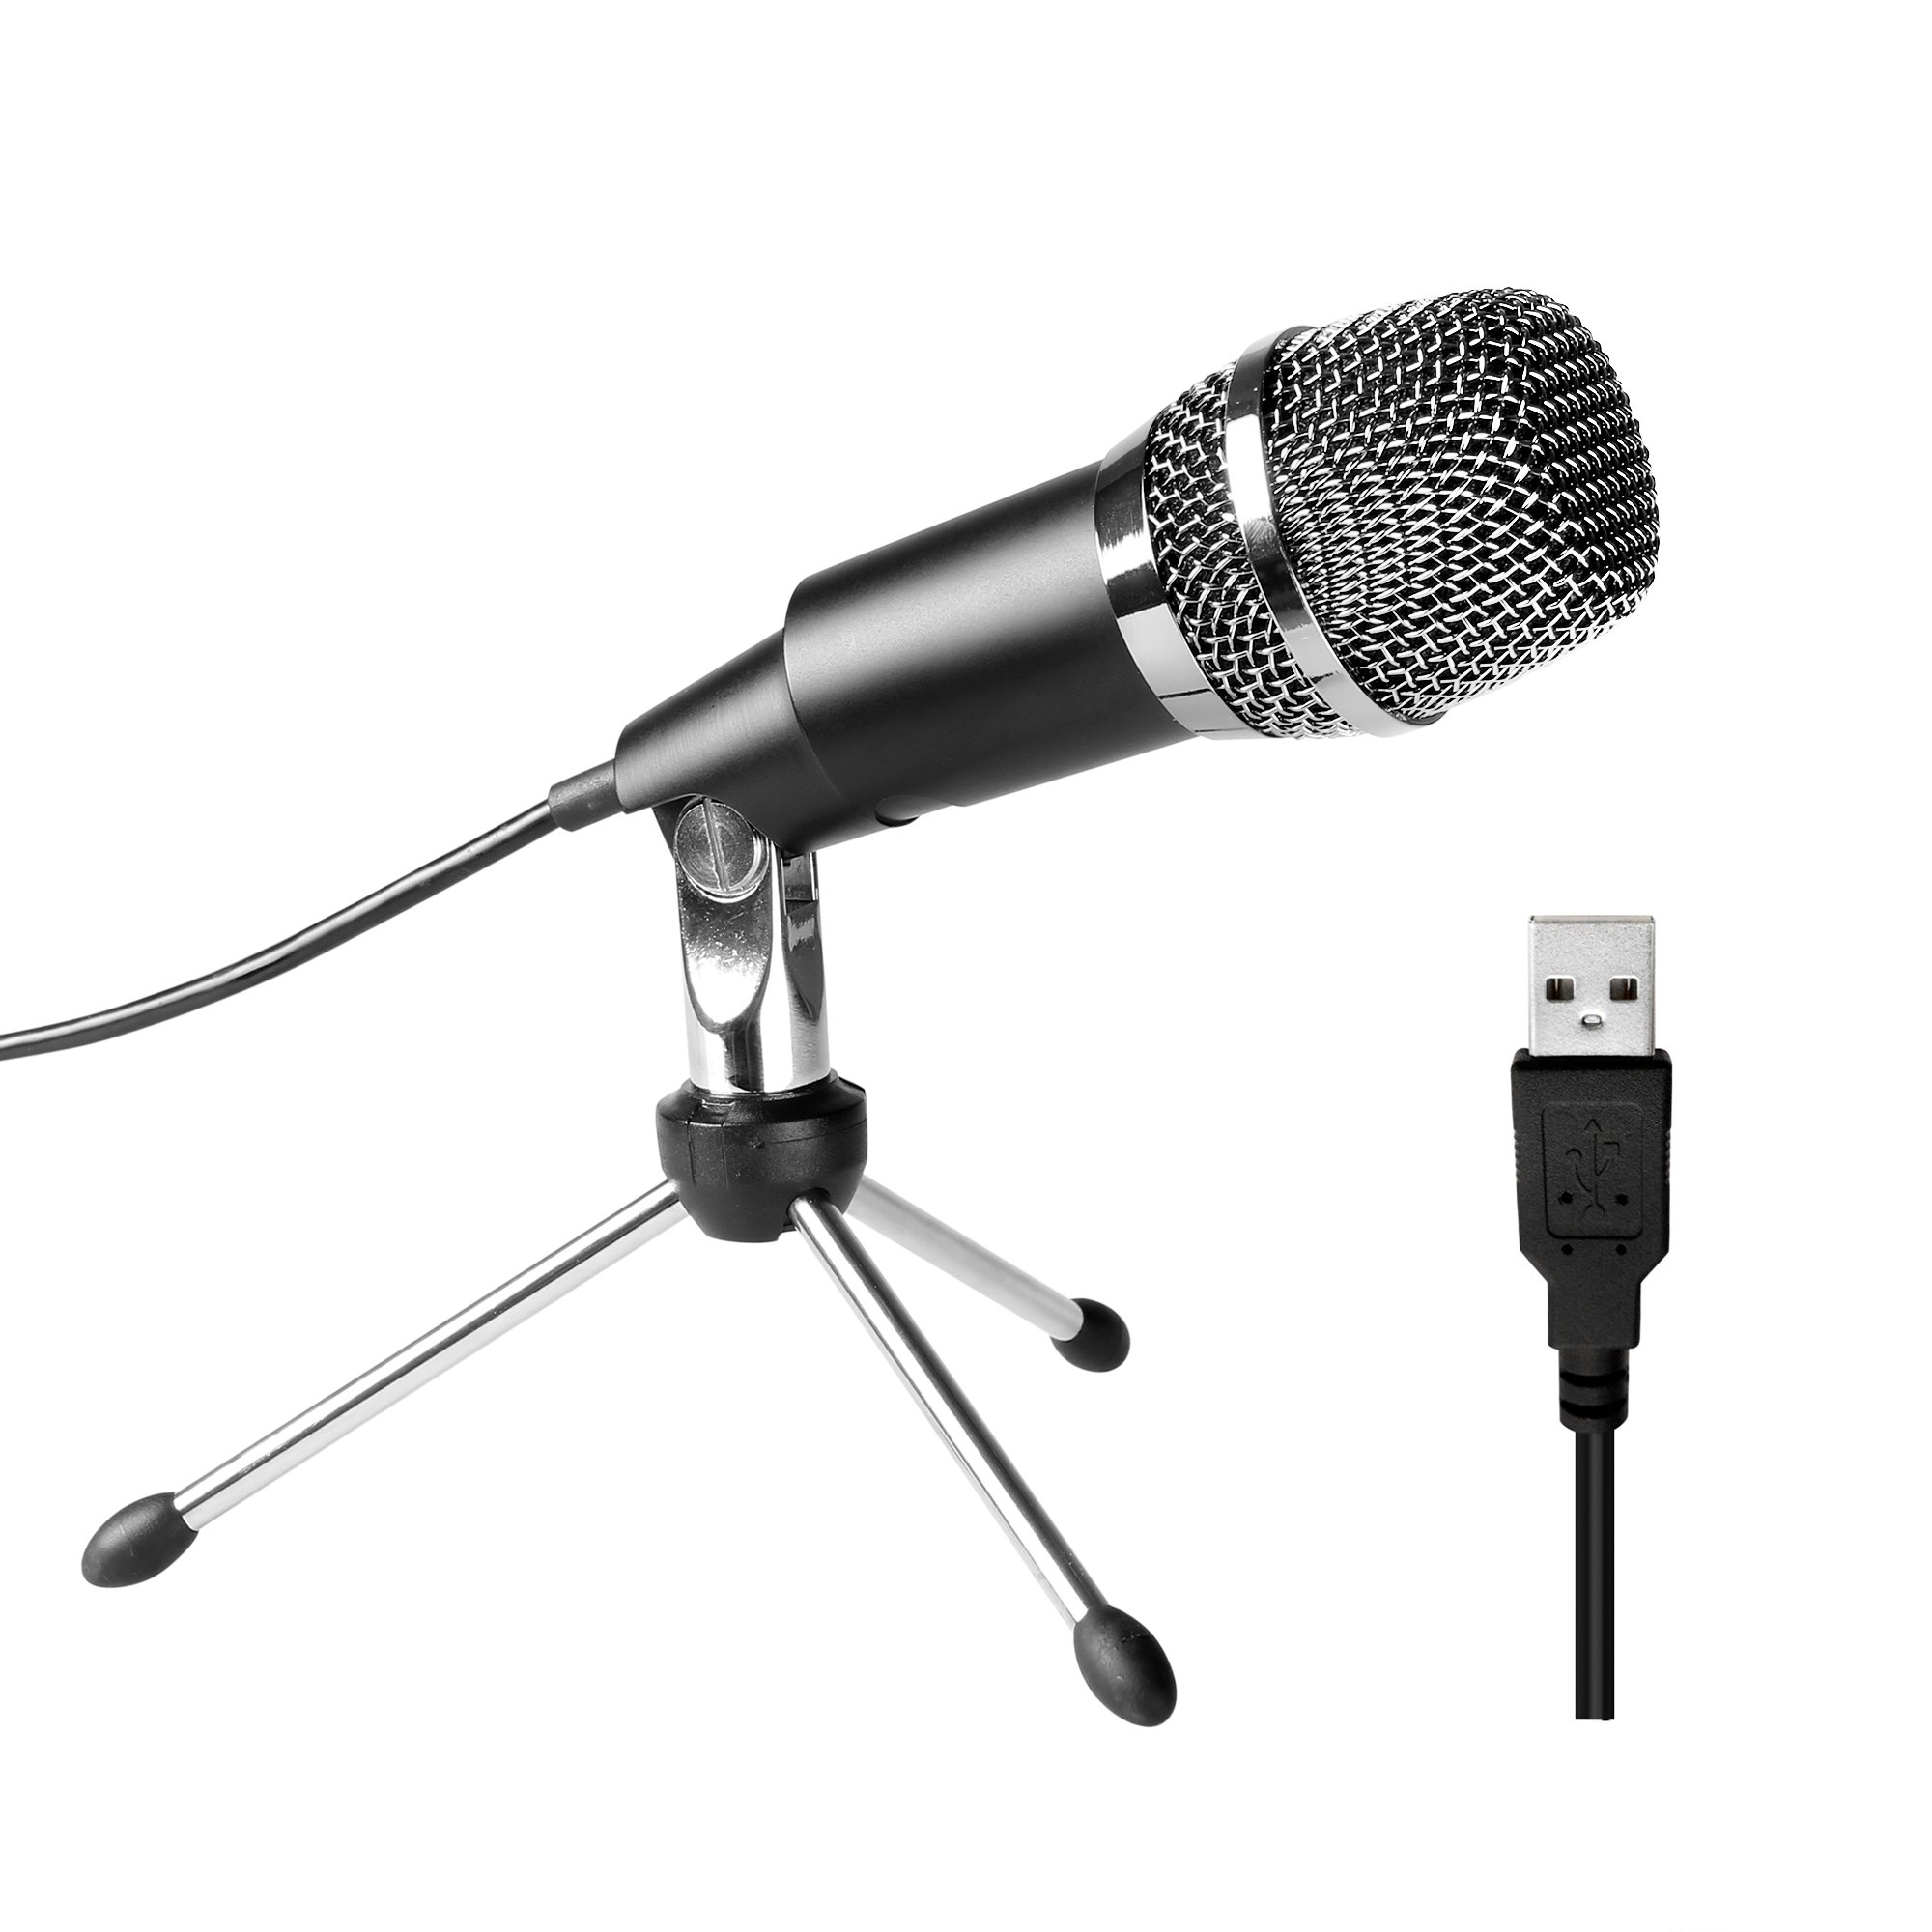 FIFINE TECHNOLOGY USB Microphone,Fifine Plug &Play Home Studio USB Condenser Microphone for Skype, Recordings for YouTube, Google Voice Search, Games(Windows/Mac)-K668 by FIFINE TECHNOLOGY (Image #9)